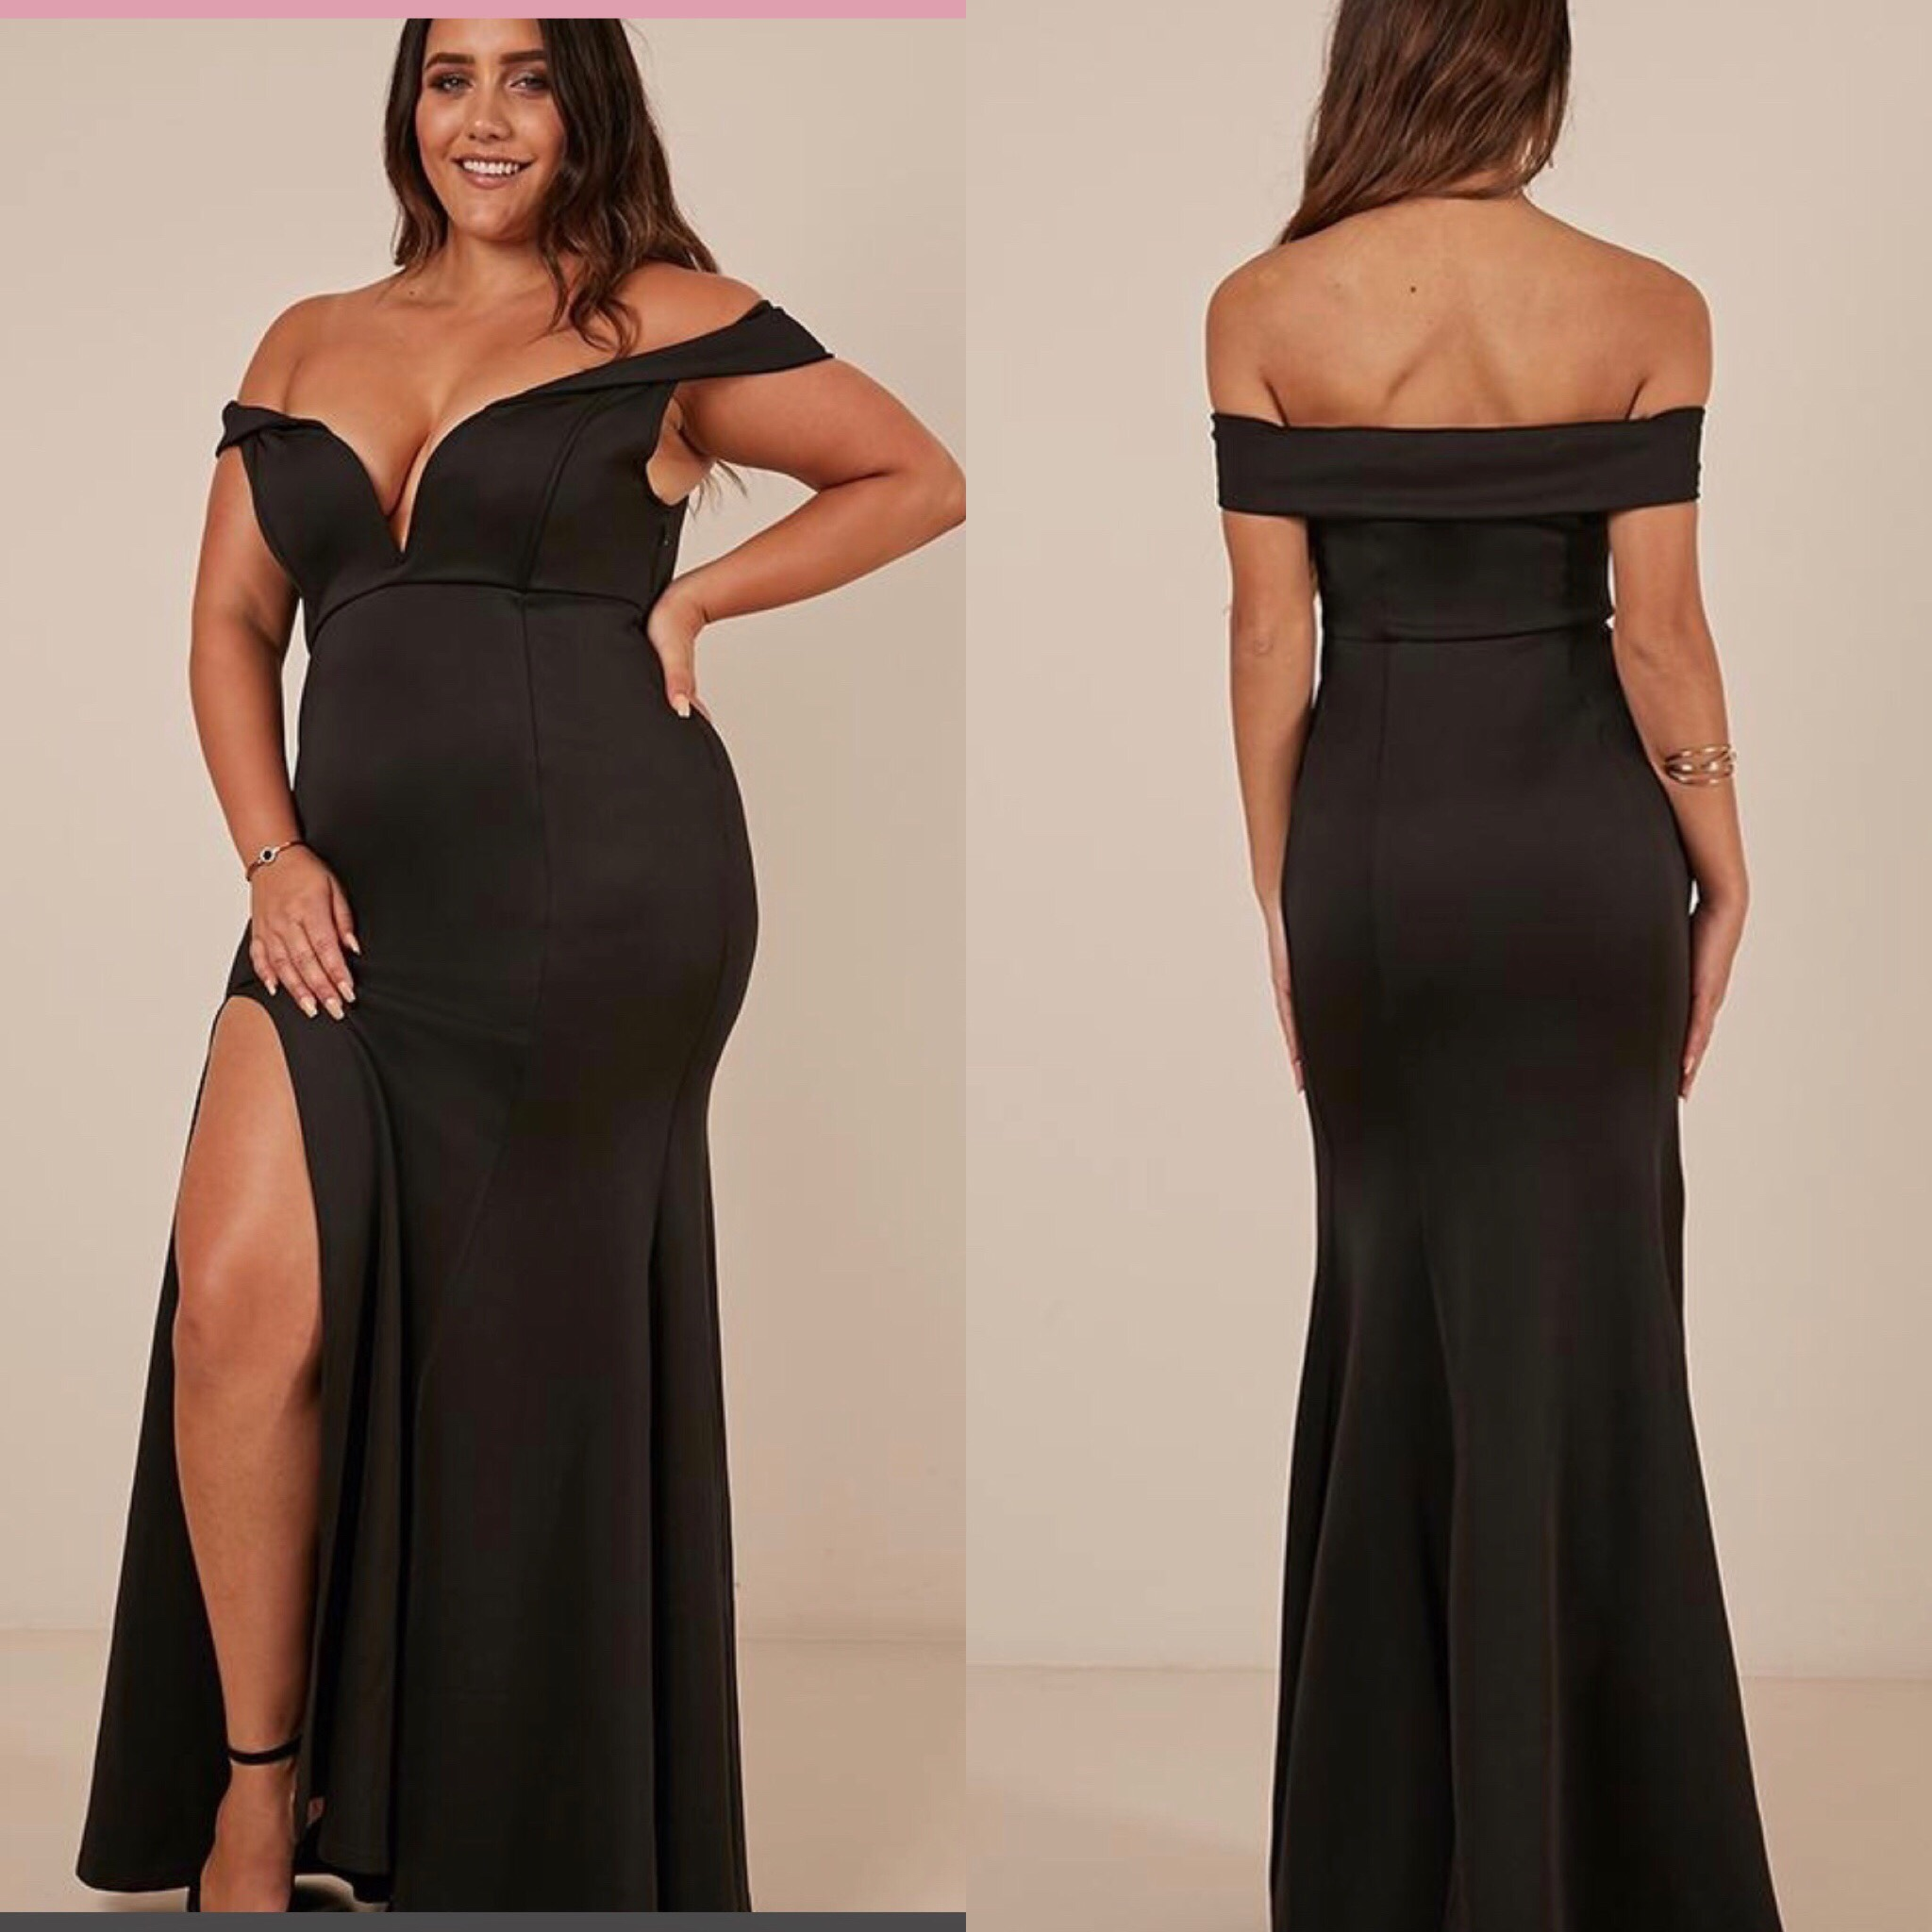 research plus size formal dresses penrith